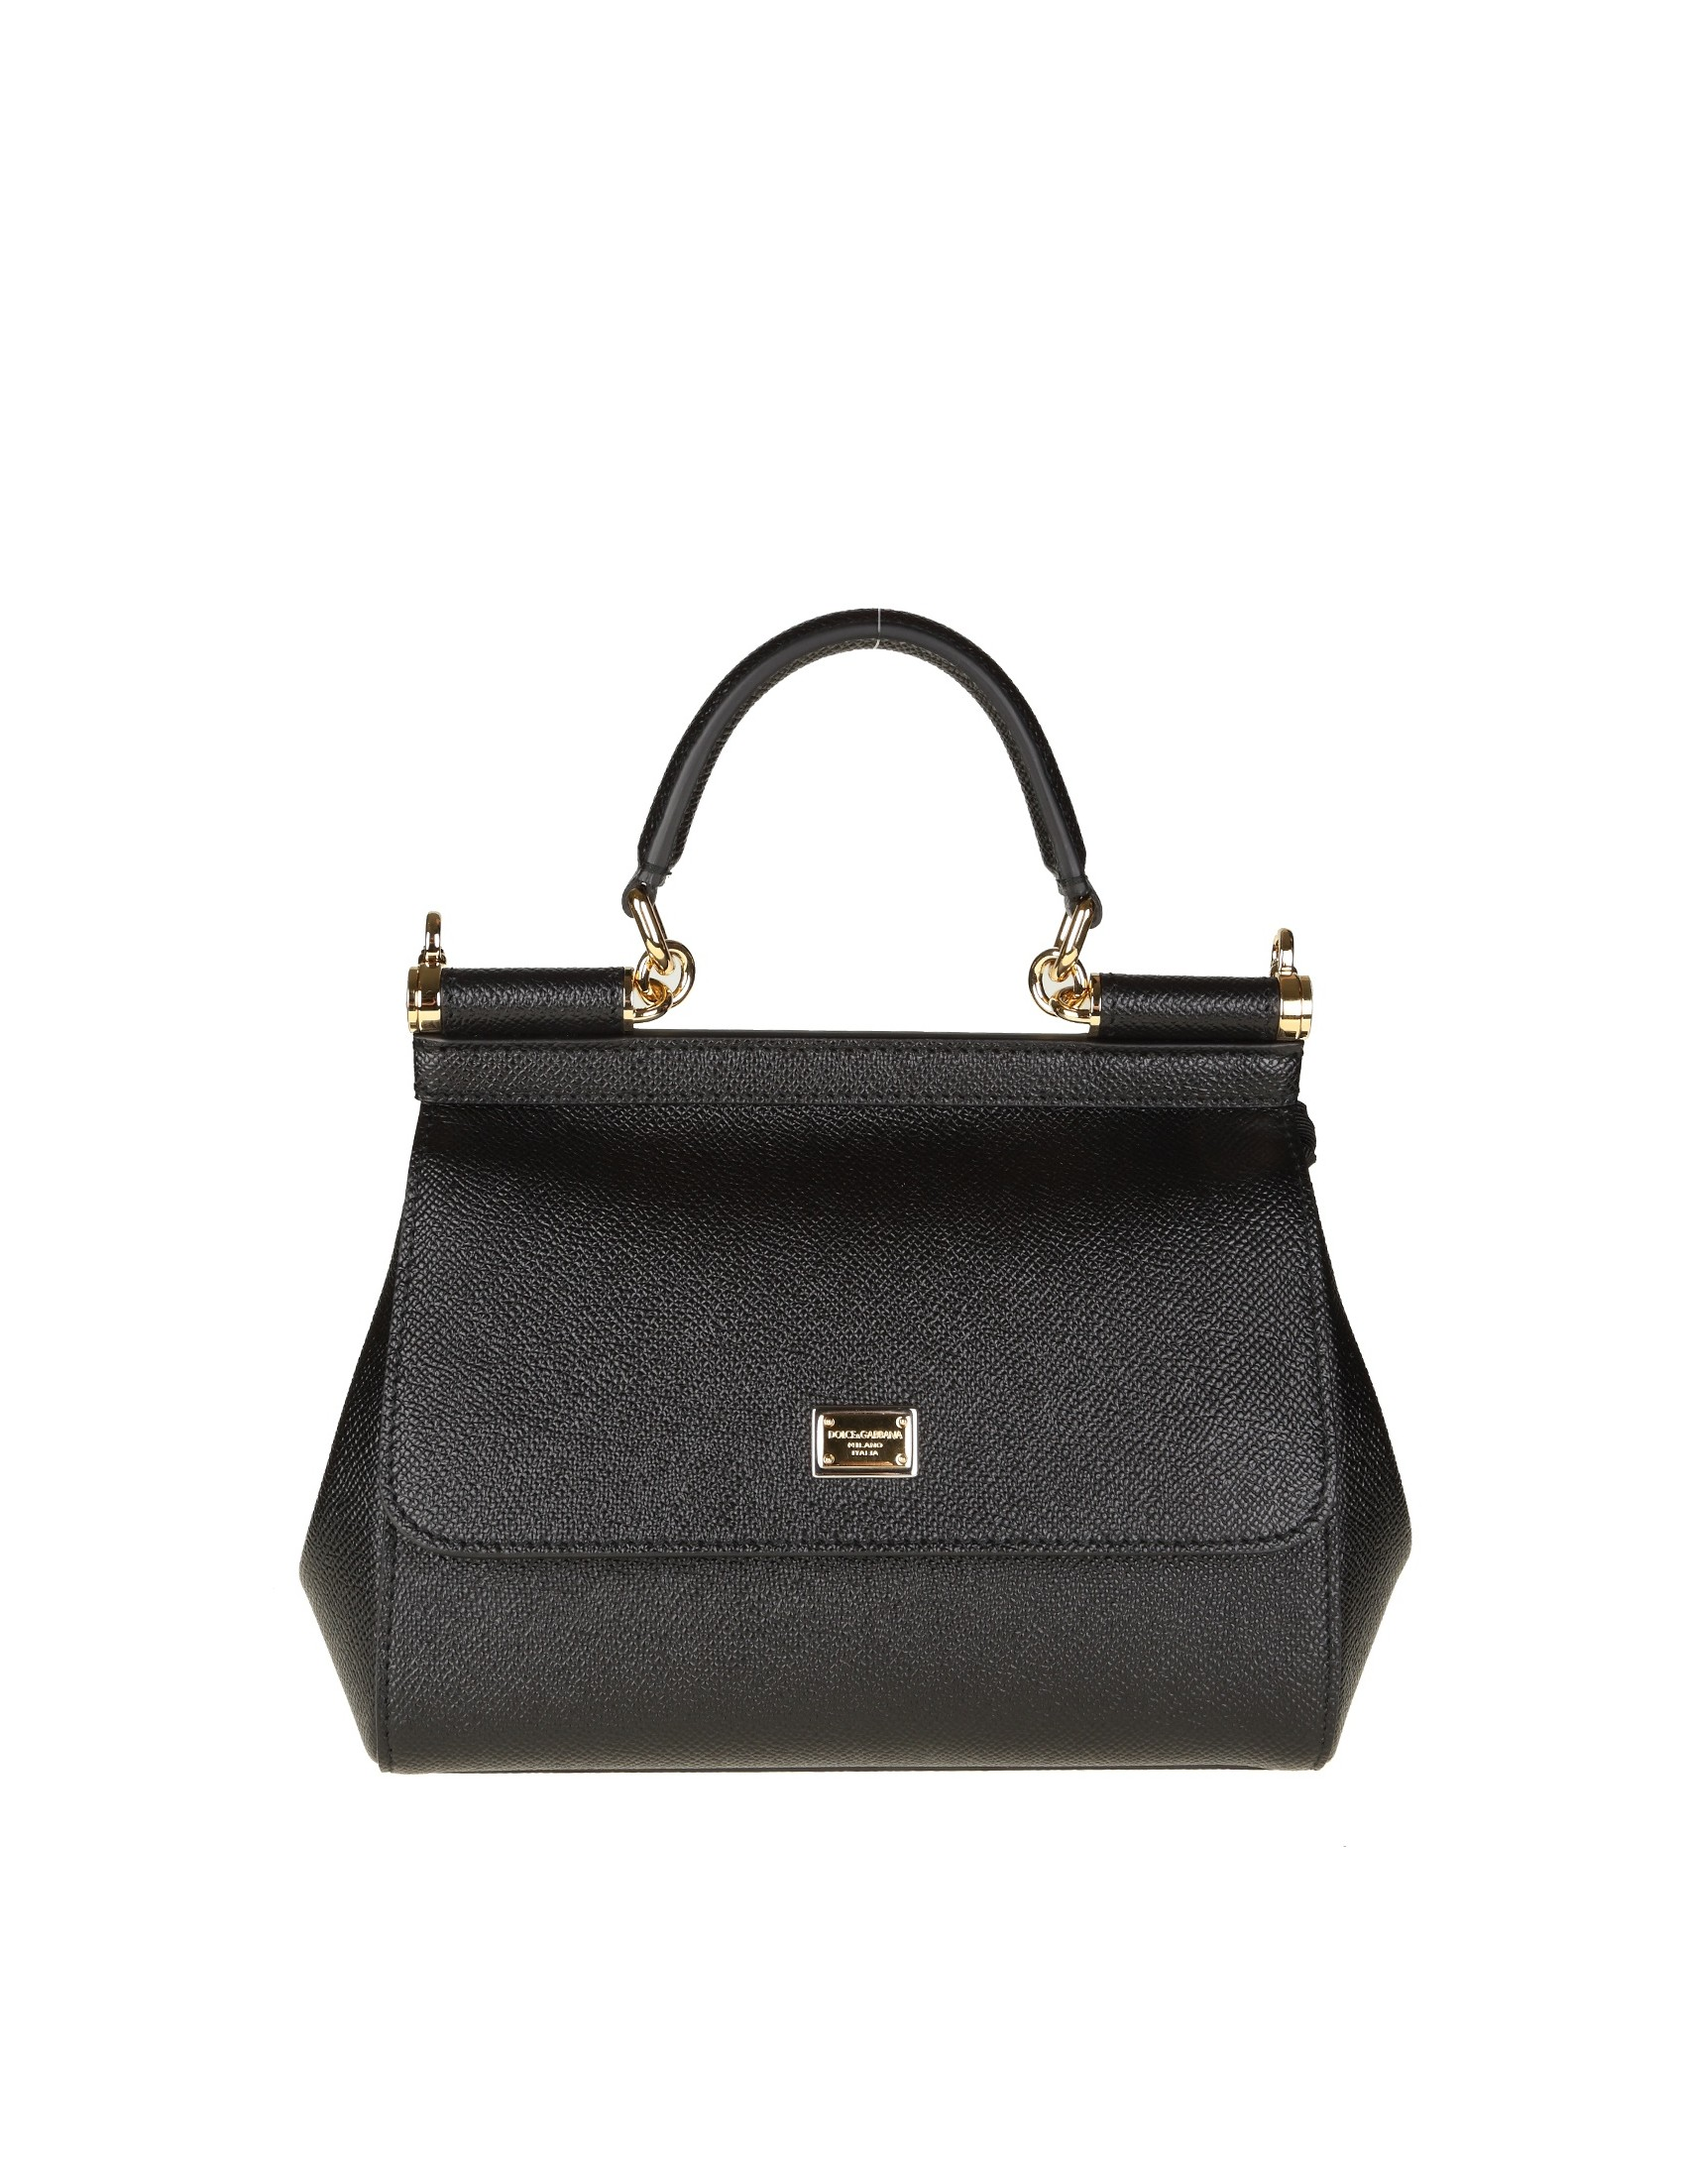 7414d8adbc85 HANDBAG SICILY BLACK COLOR FRONT PANEL WITH PRESSURE HIDDEN CLOSURE LOGO  WITH FRONT PLATE LEATHER HANDLE ADJUSTABLE AND REMOVABLE LEATHER STRAP